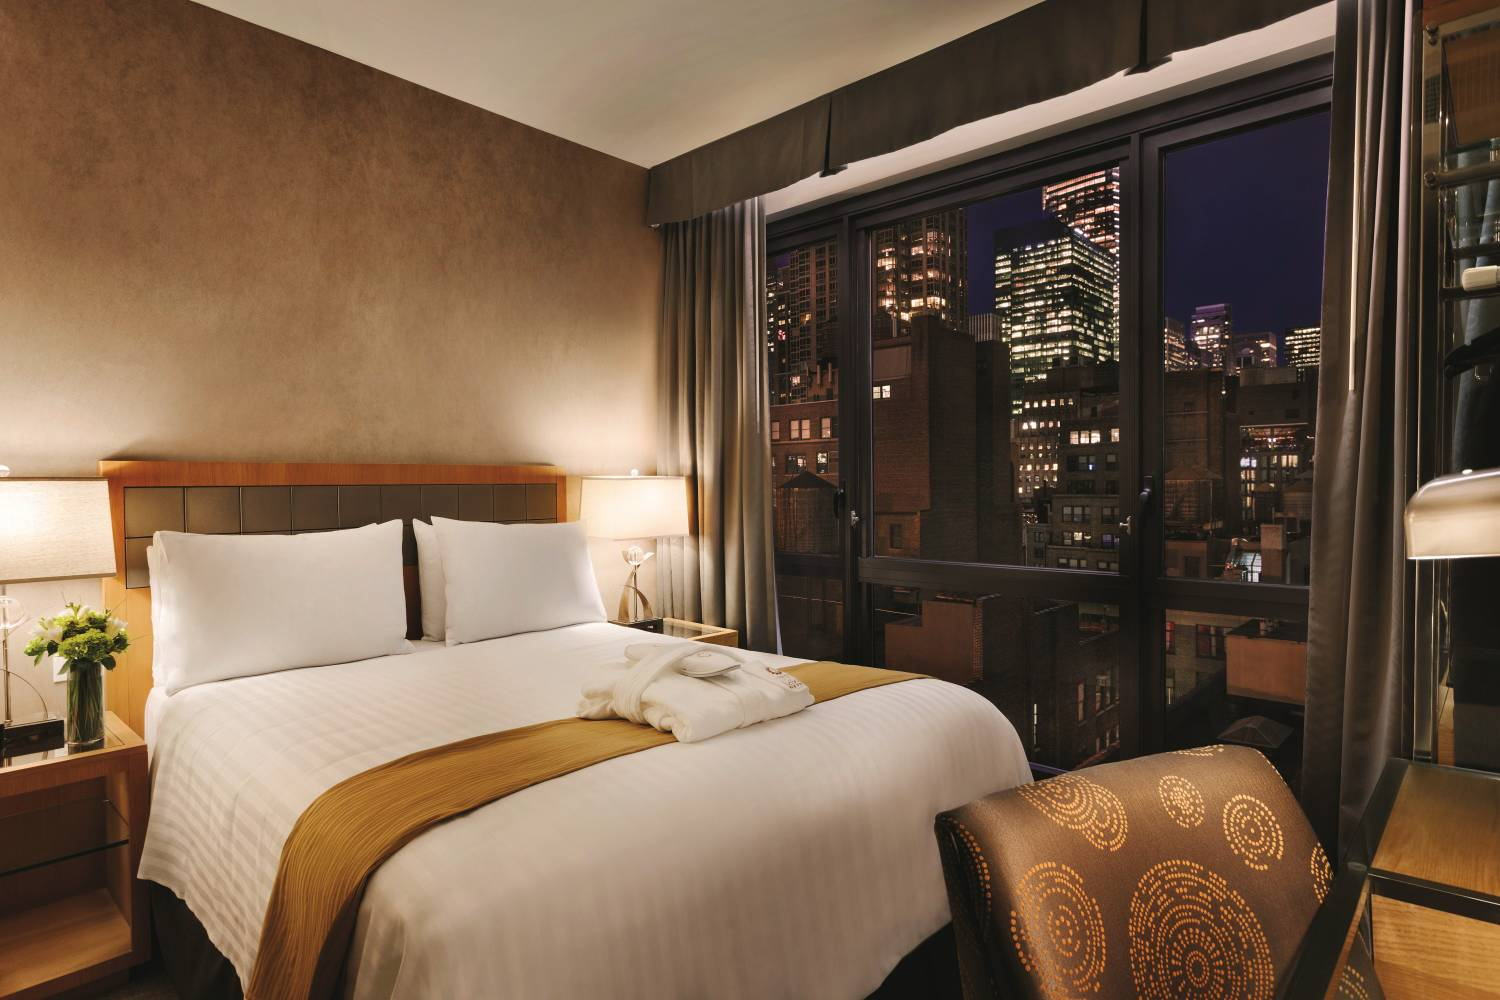 Queen bedroom with view of Manhattan at Executive Hotel LeSoleil in Midtown West